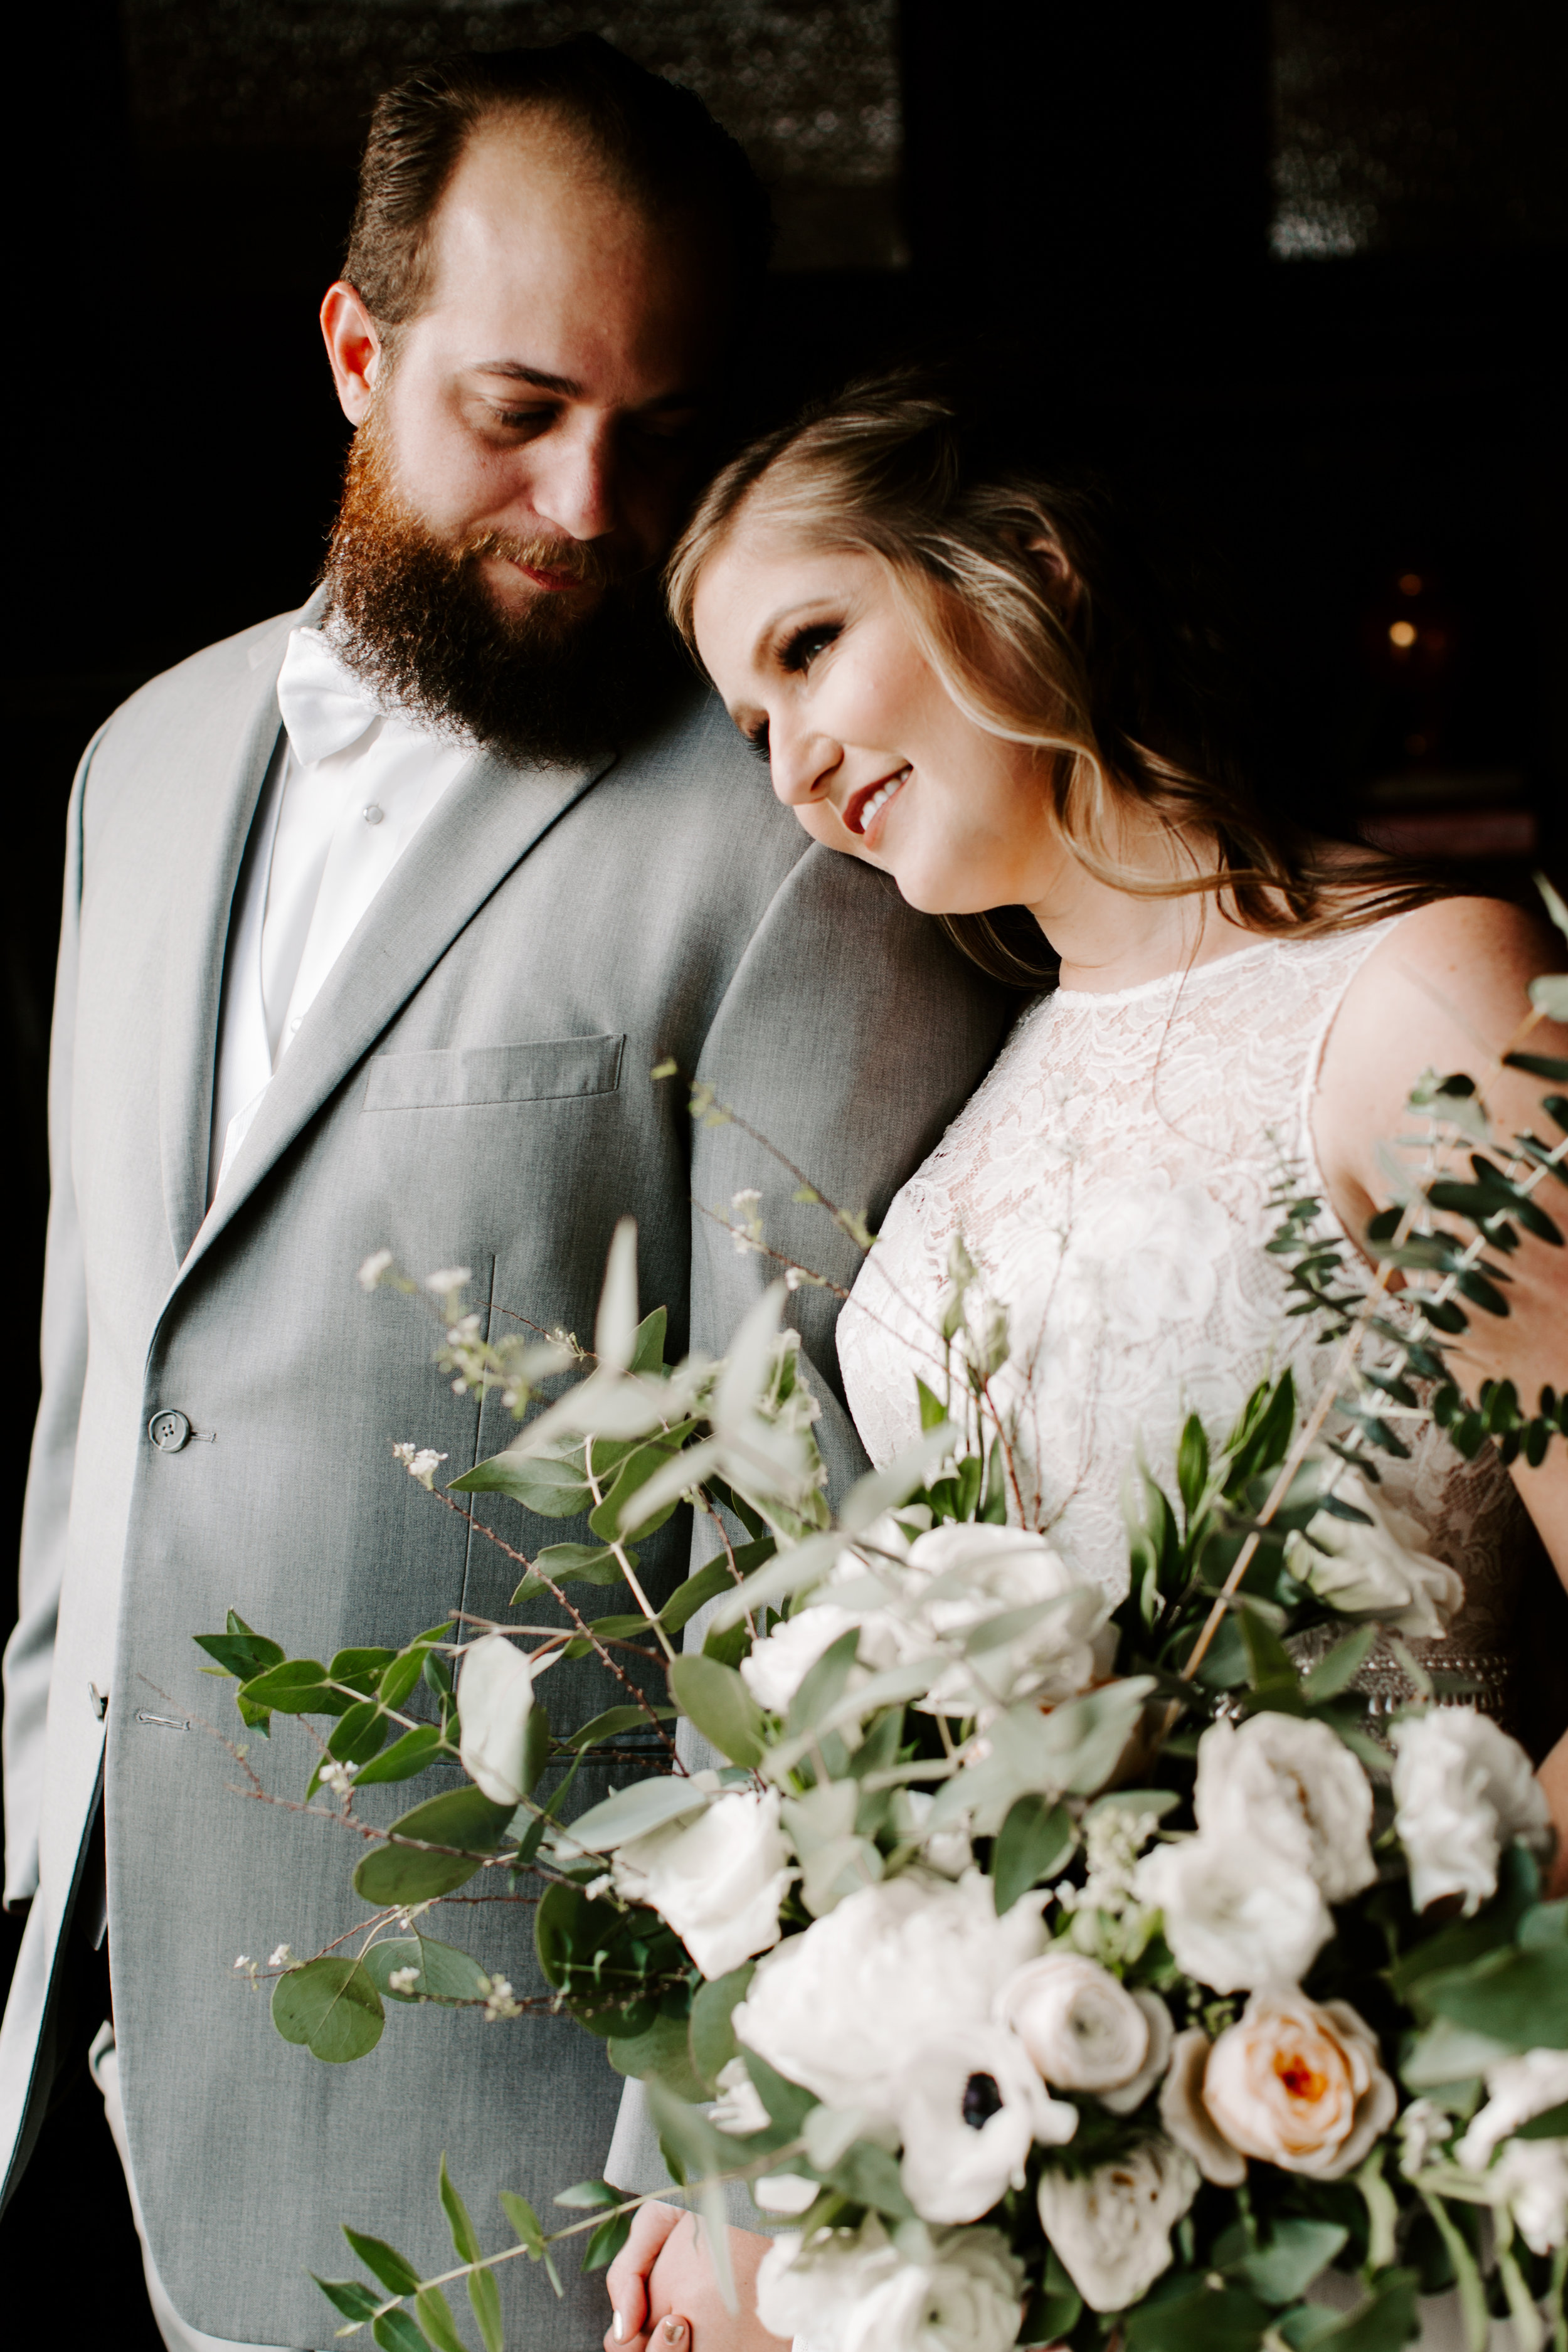 Smoky Hollow Studios Wedding Anne & Lewis Emily Magers Photography-386.jpg